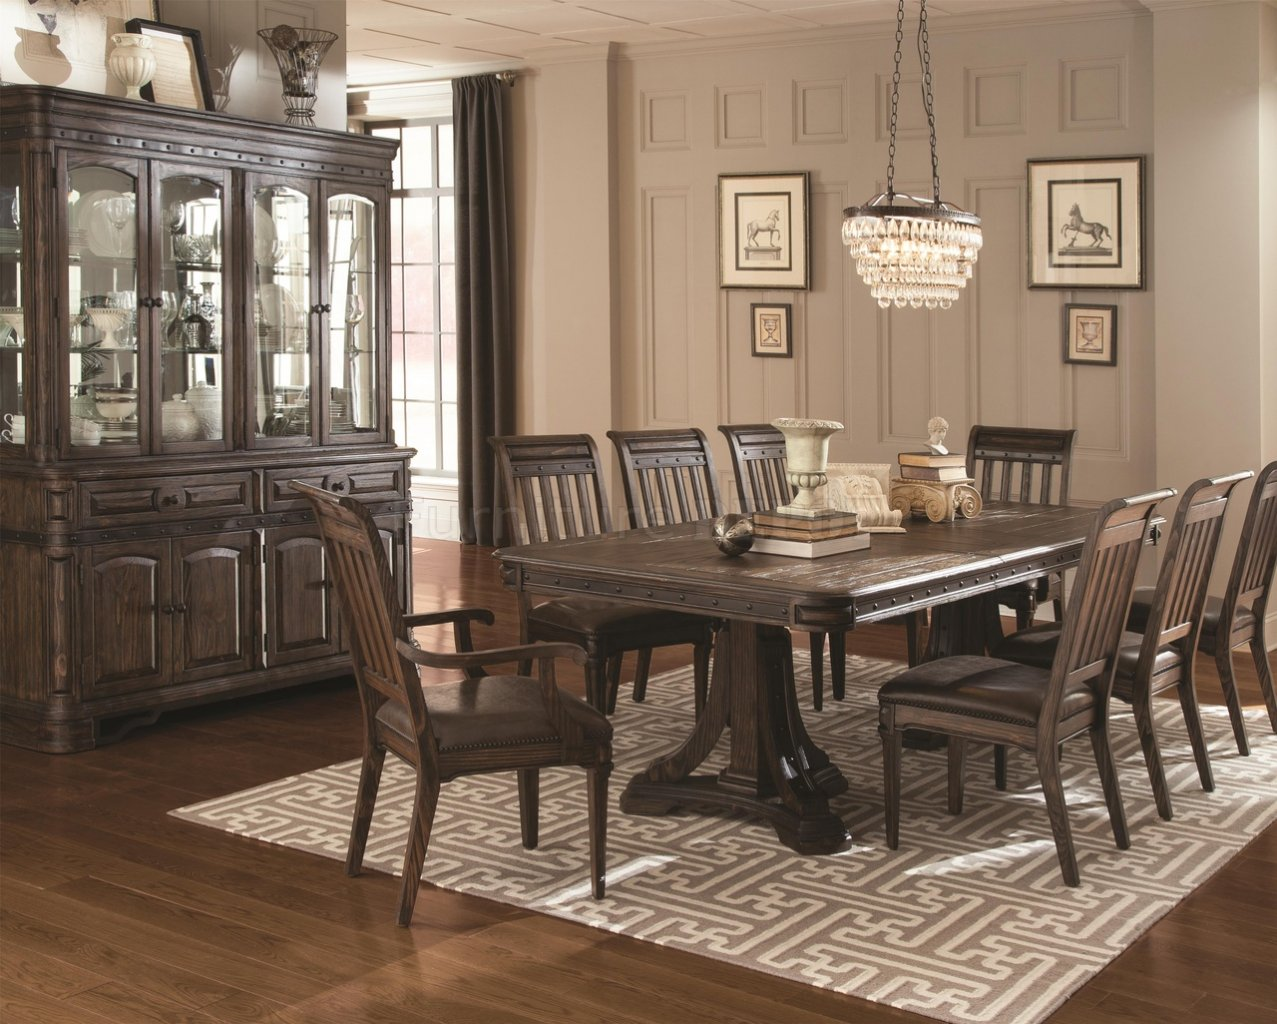 Fall Trend: Rustic Dining Table and Chair Sets - www.eFurnitureHouse.com